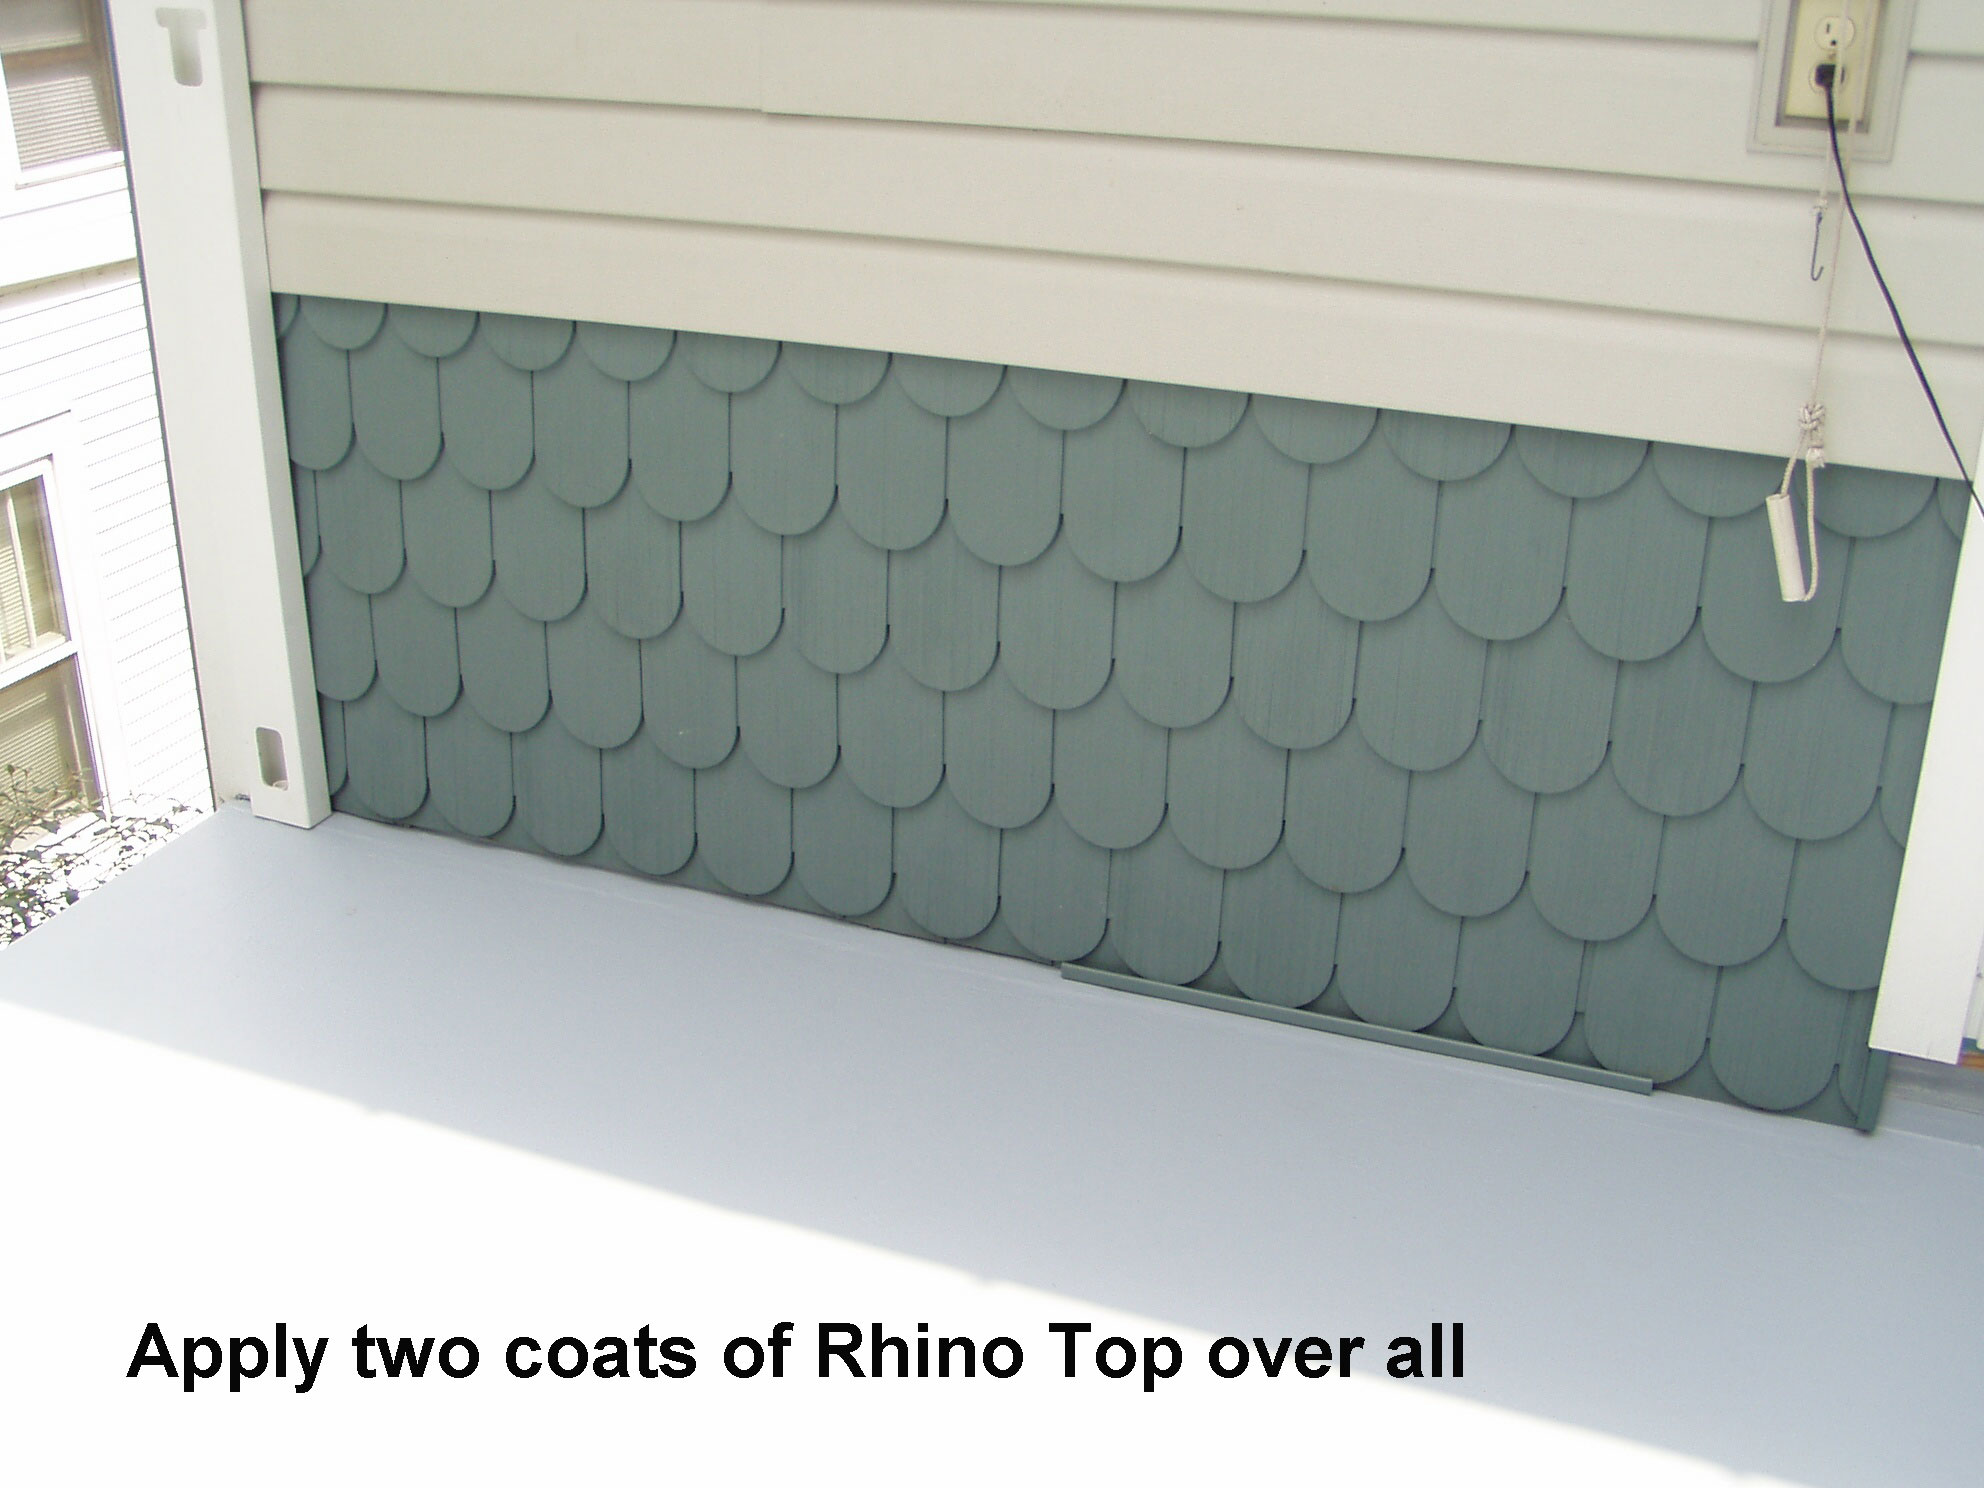 2 coats of Rhino Top